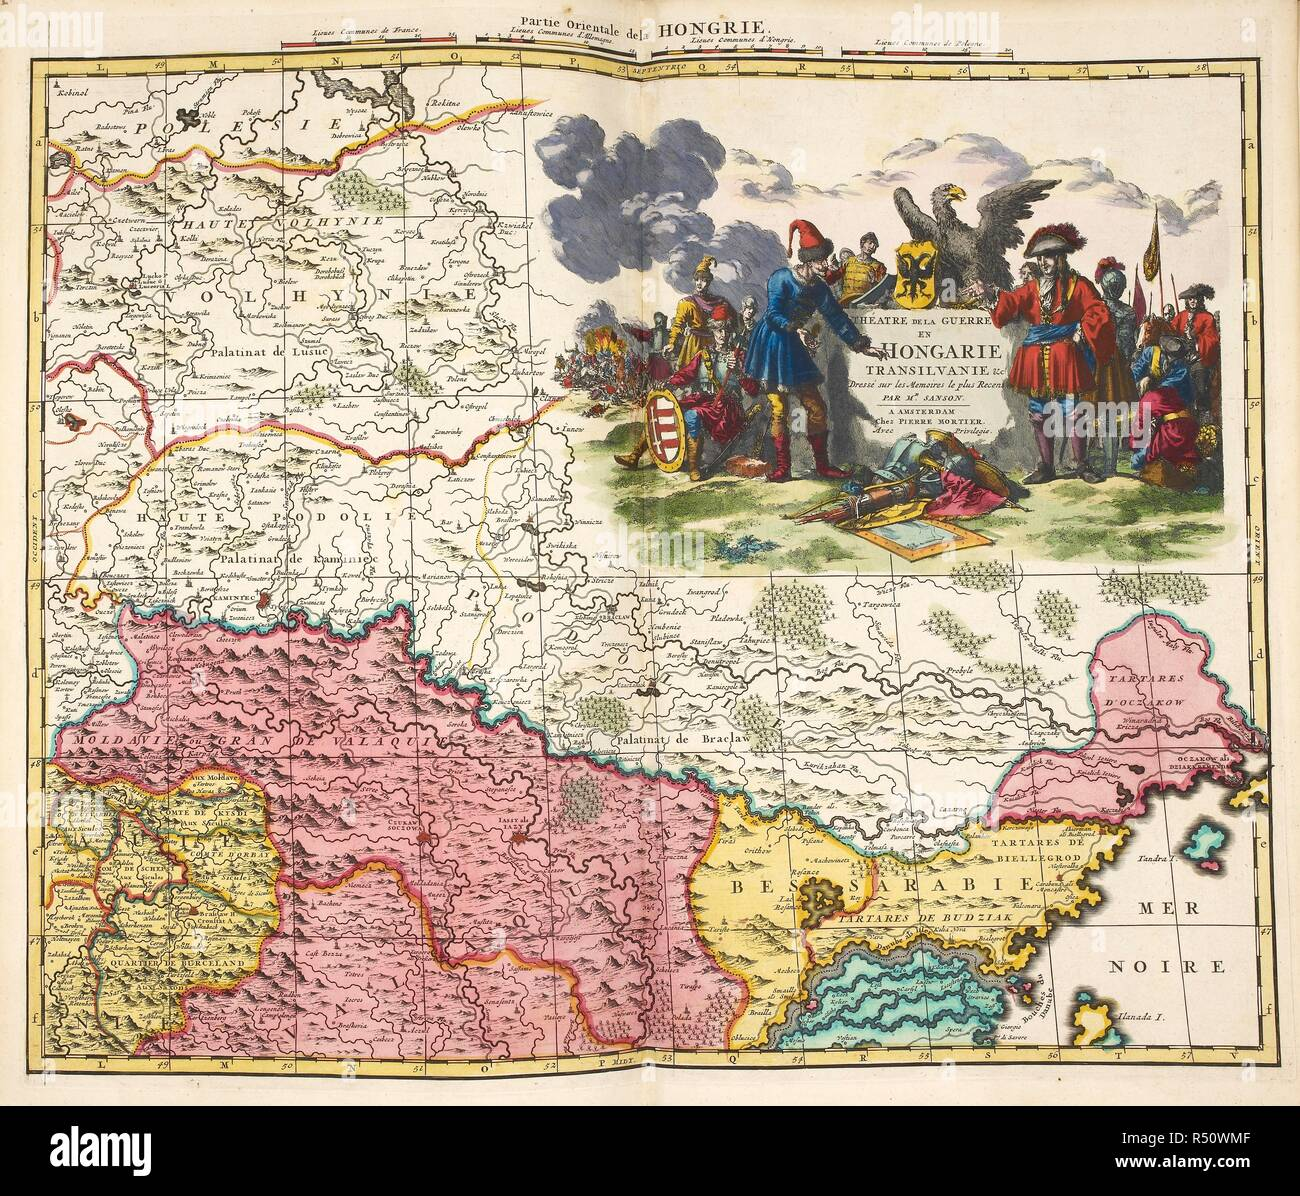 Map Of Hongarie Or Hungary In Europe A New Atlas With Updated